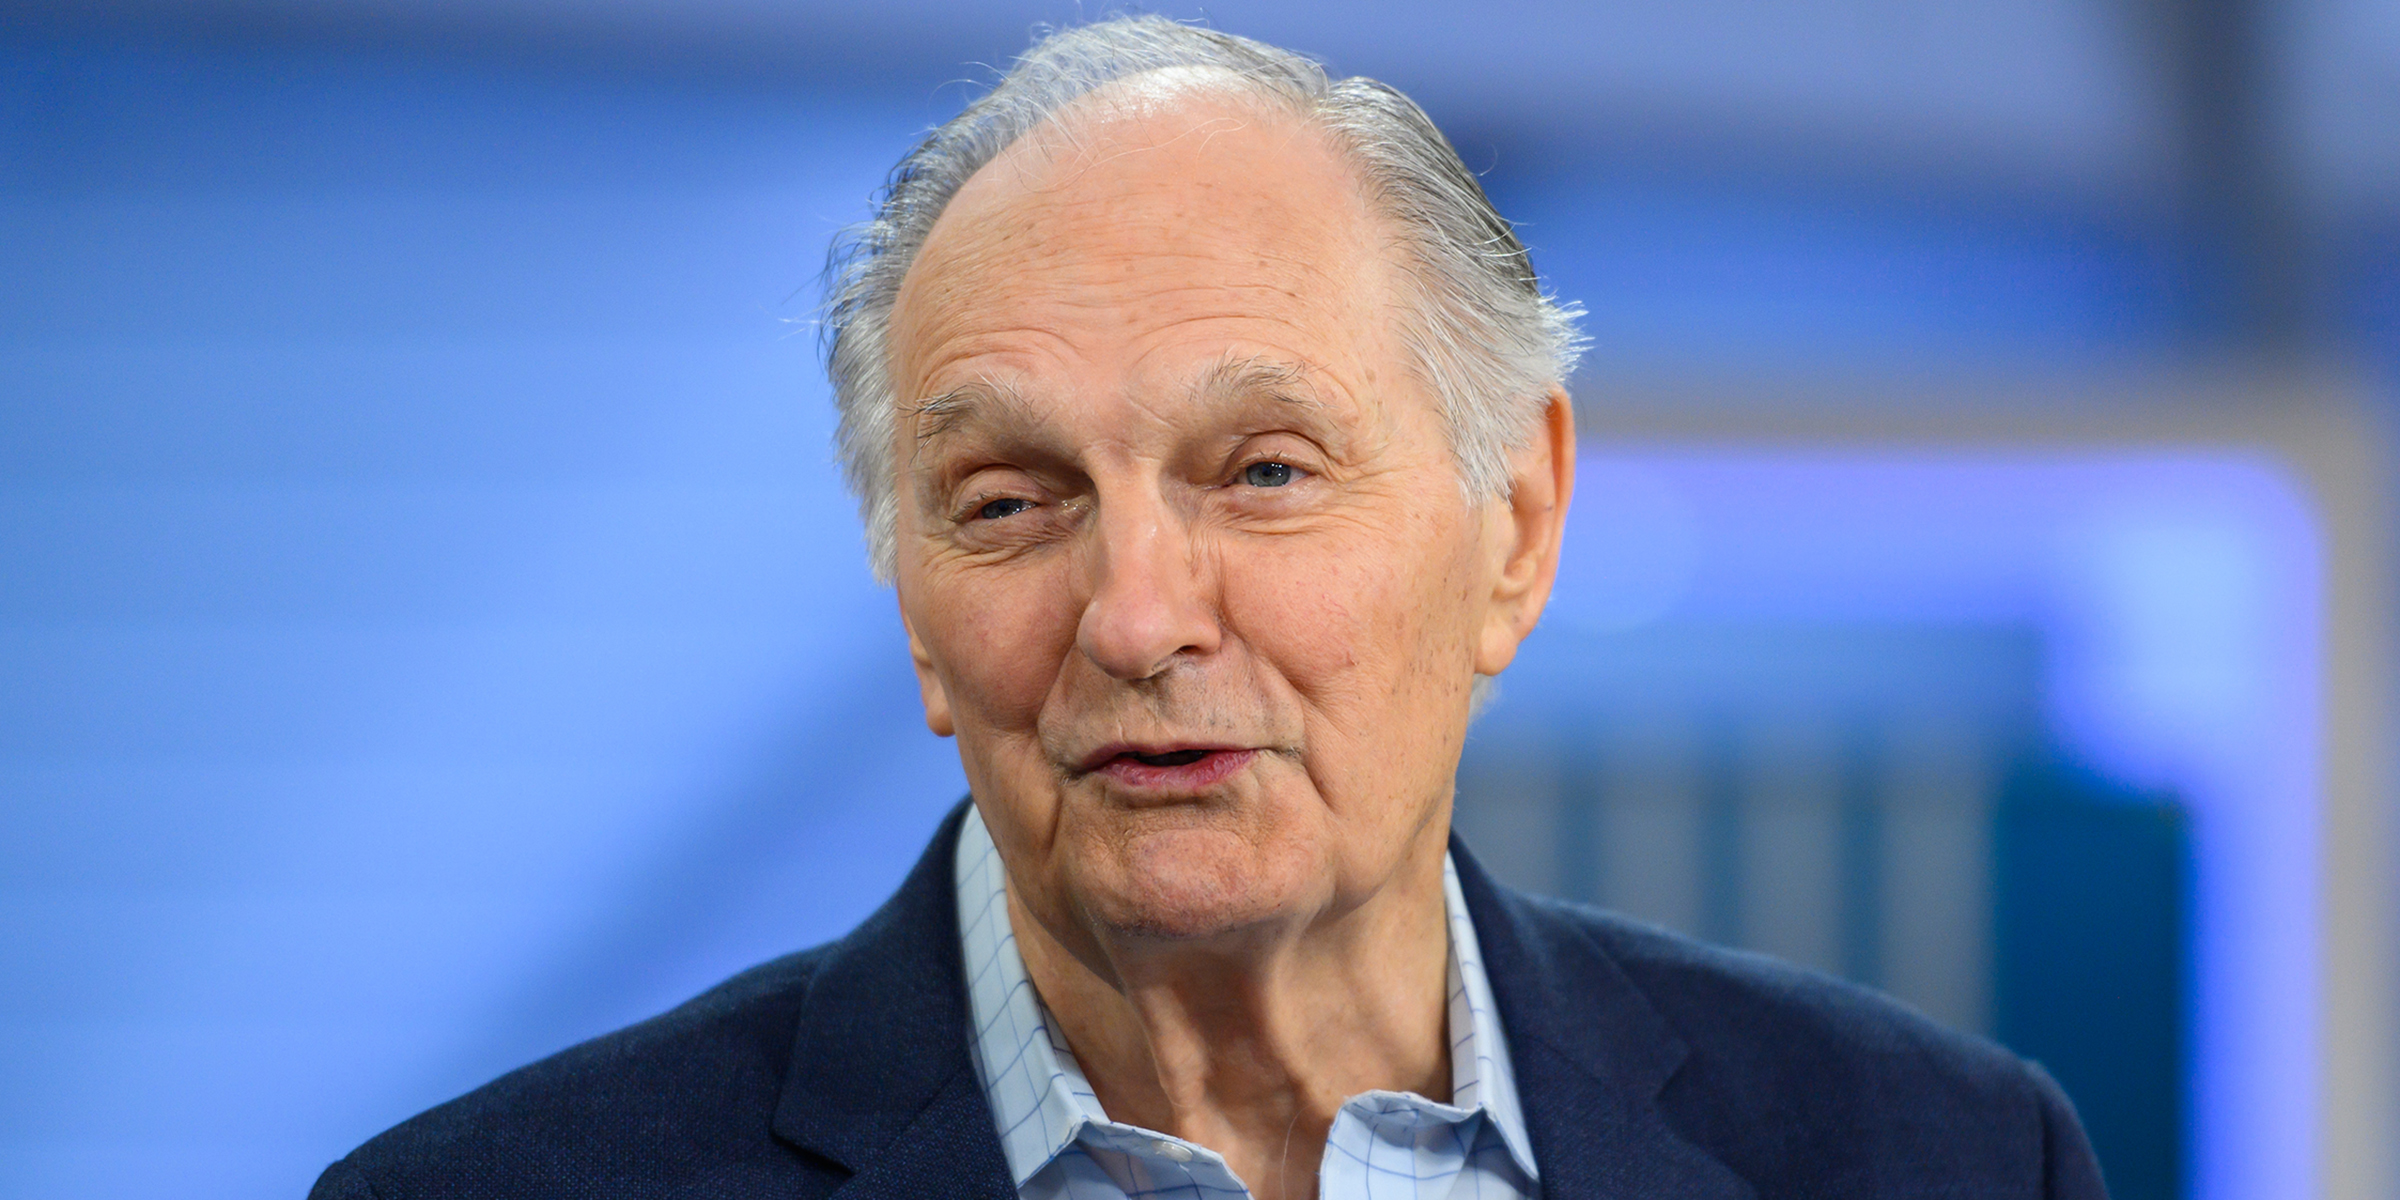 Alan Alda on living with Parkinson's disease: 'I feel good'